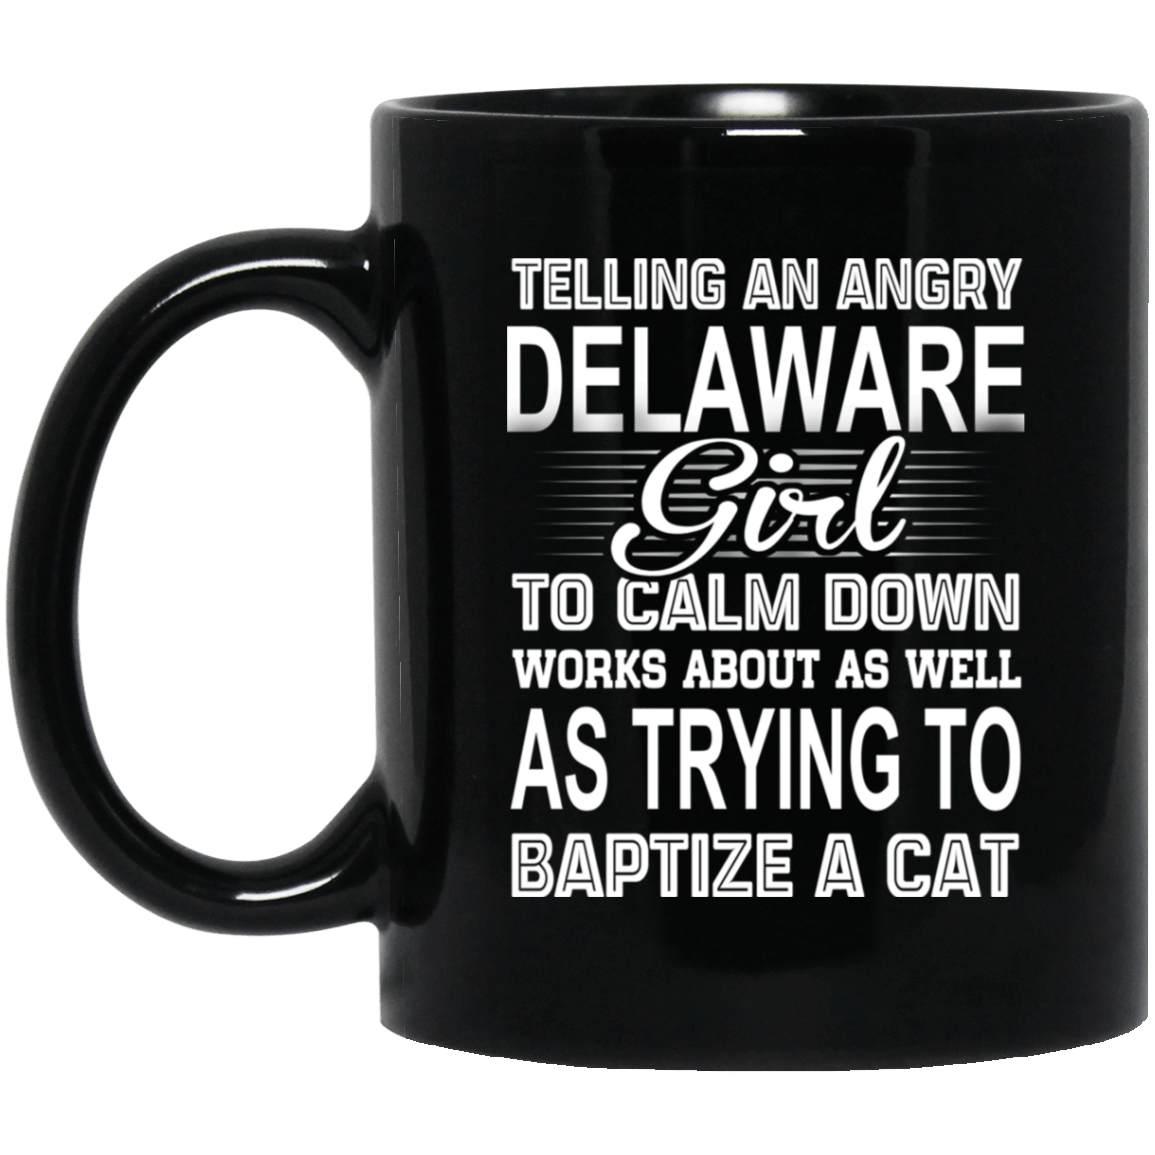 Telling An Angry Delaware Girl To Calm Down Works About As Well As Trying To Baptize A Cat Mug 1065-10181-76151916-49307 - Tee Ript